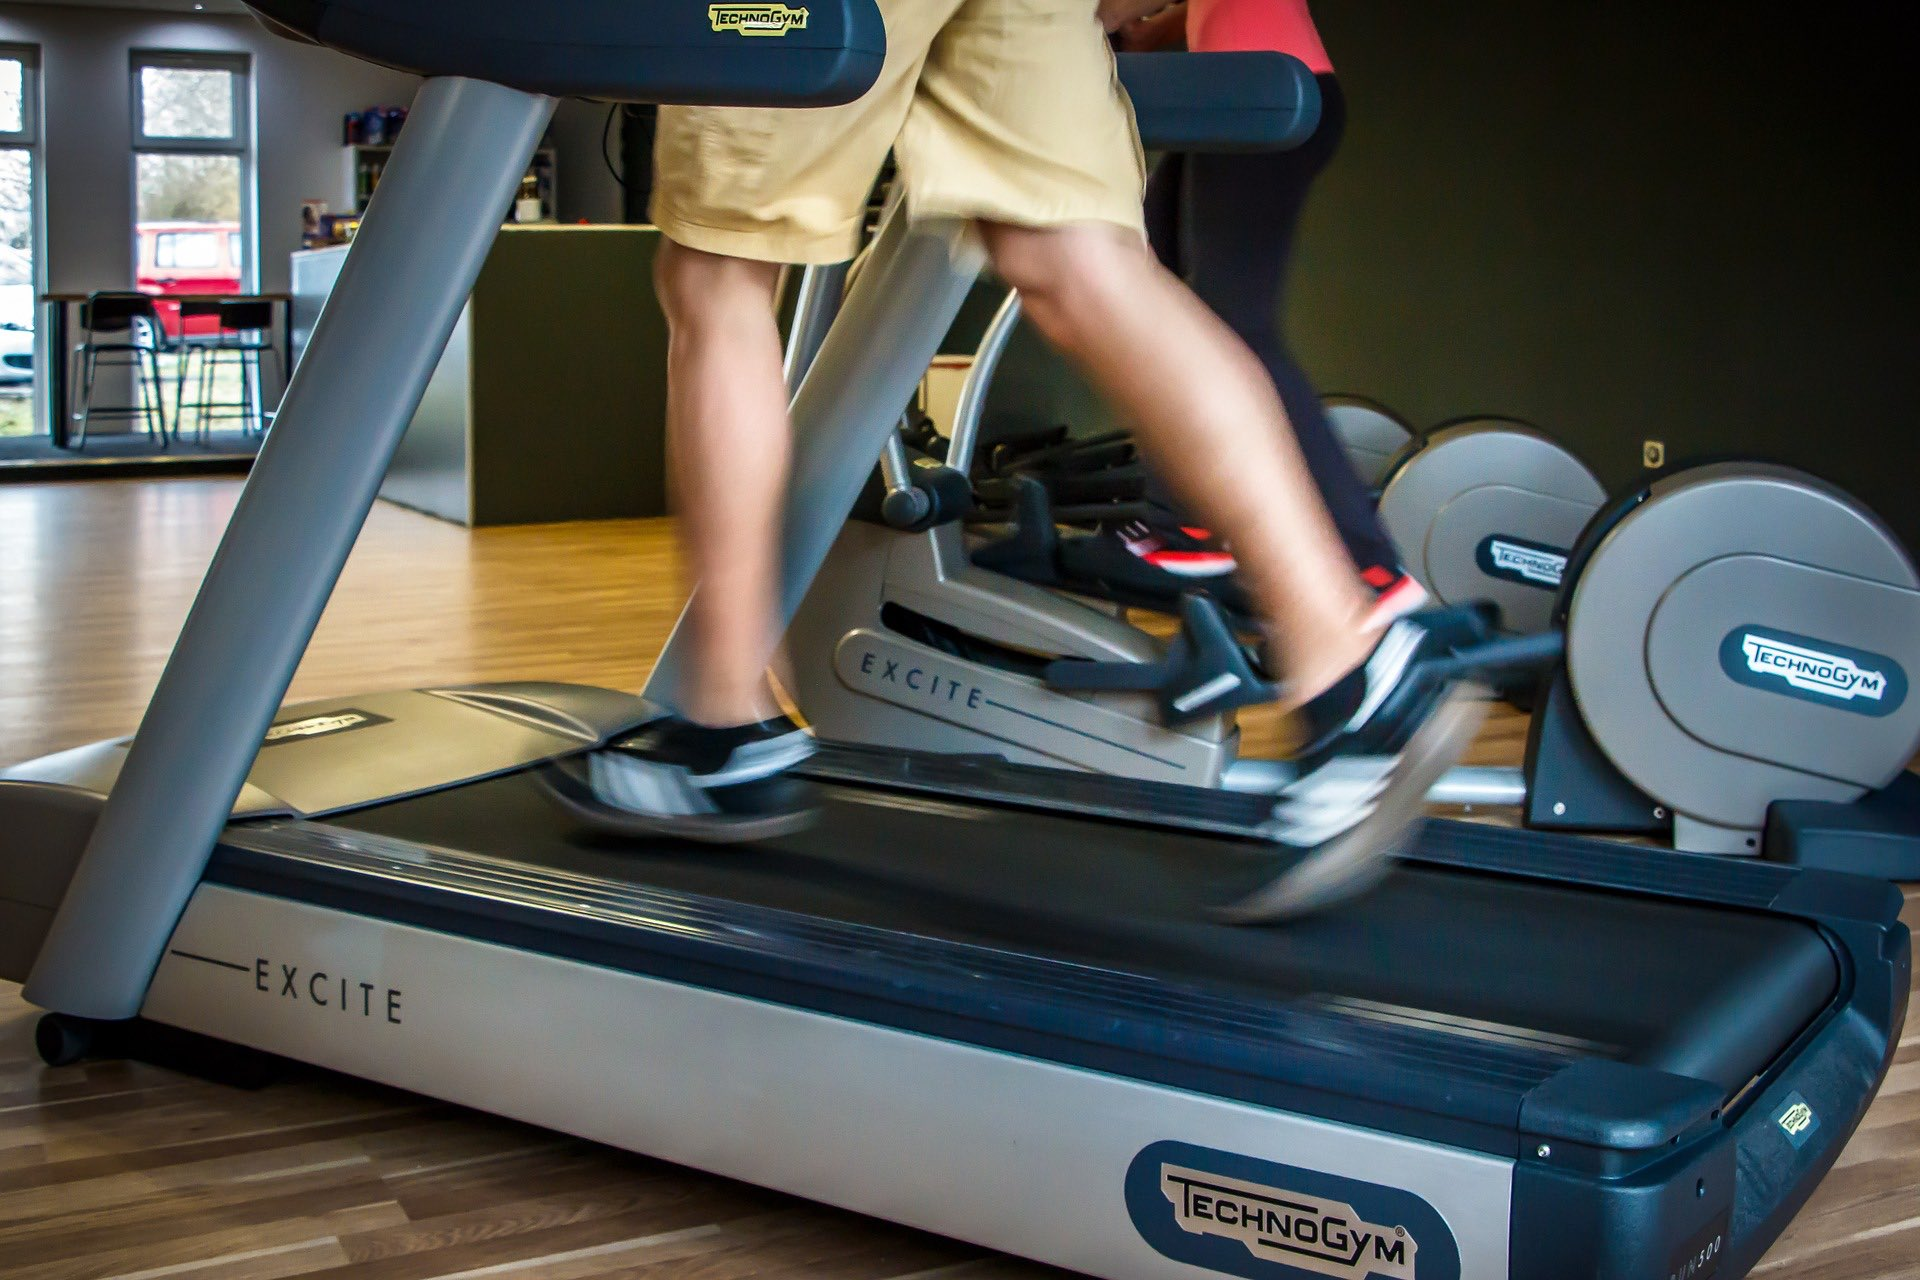 Treadmill Desks and Productivity for Writers